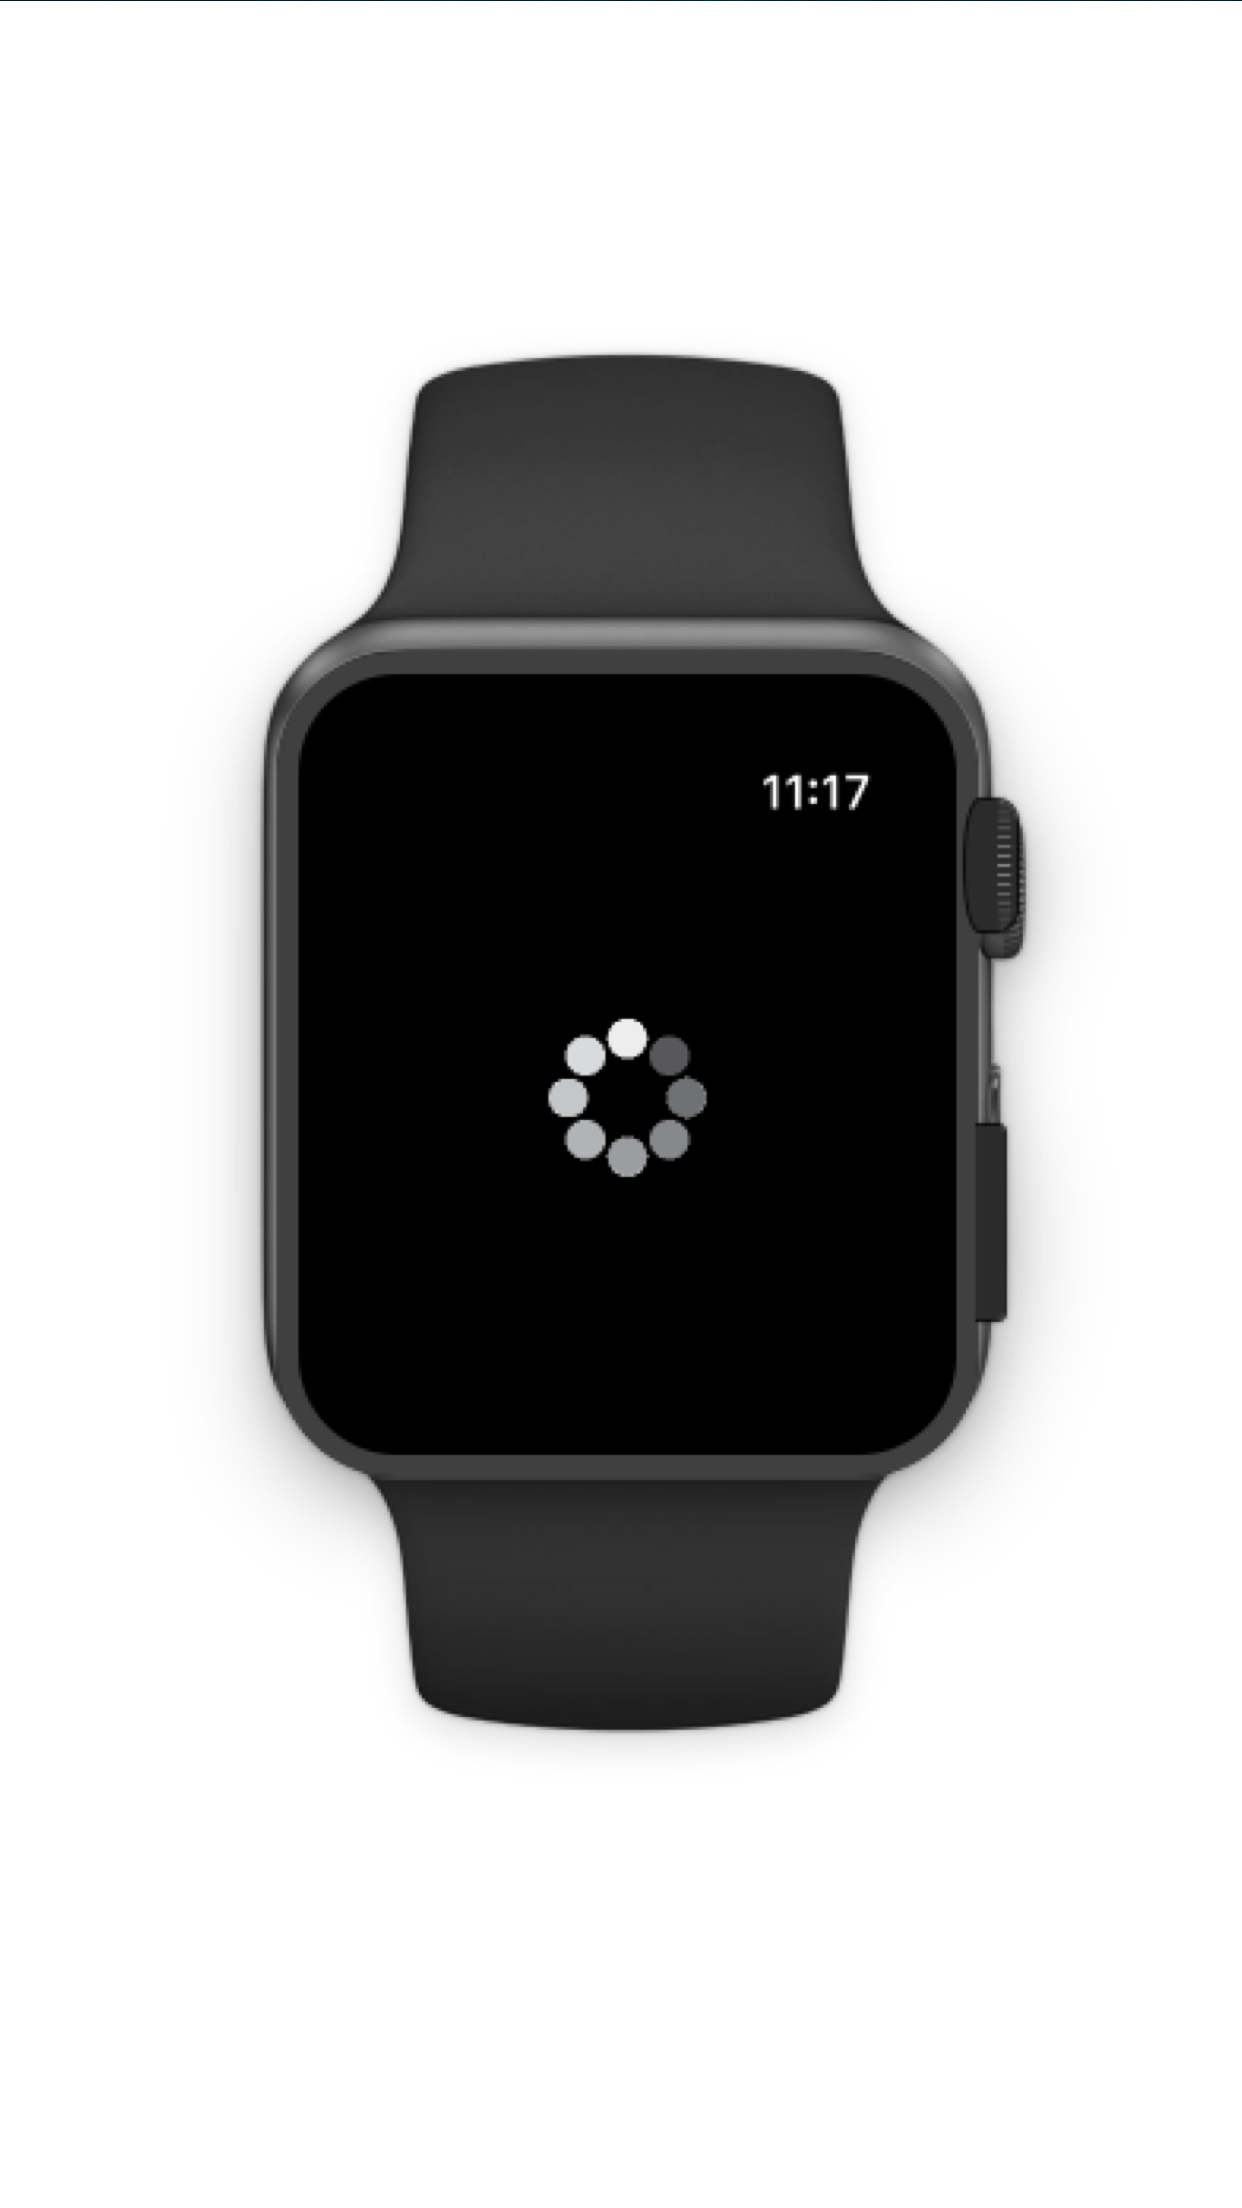 Apple Watch loader screenshot